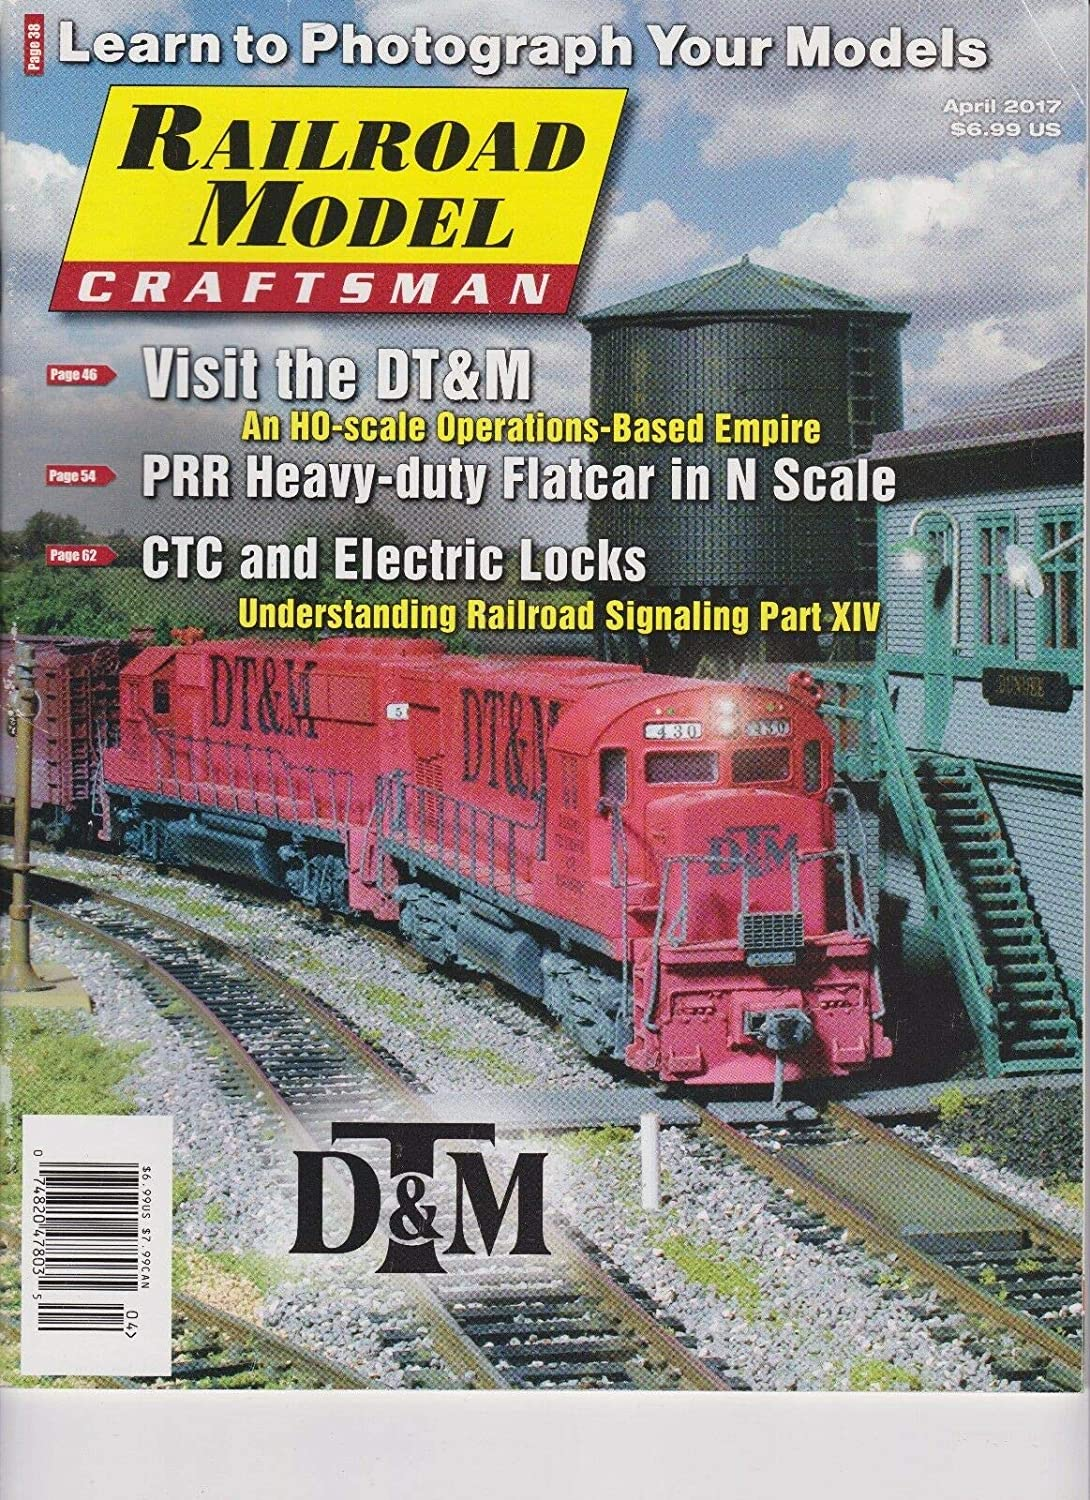 RAILROAD MODEL CRAFTSMAN MAGAZINE APRIL 2017 Unbranded